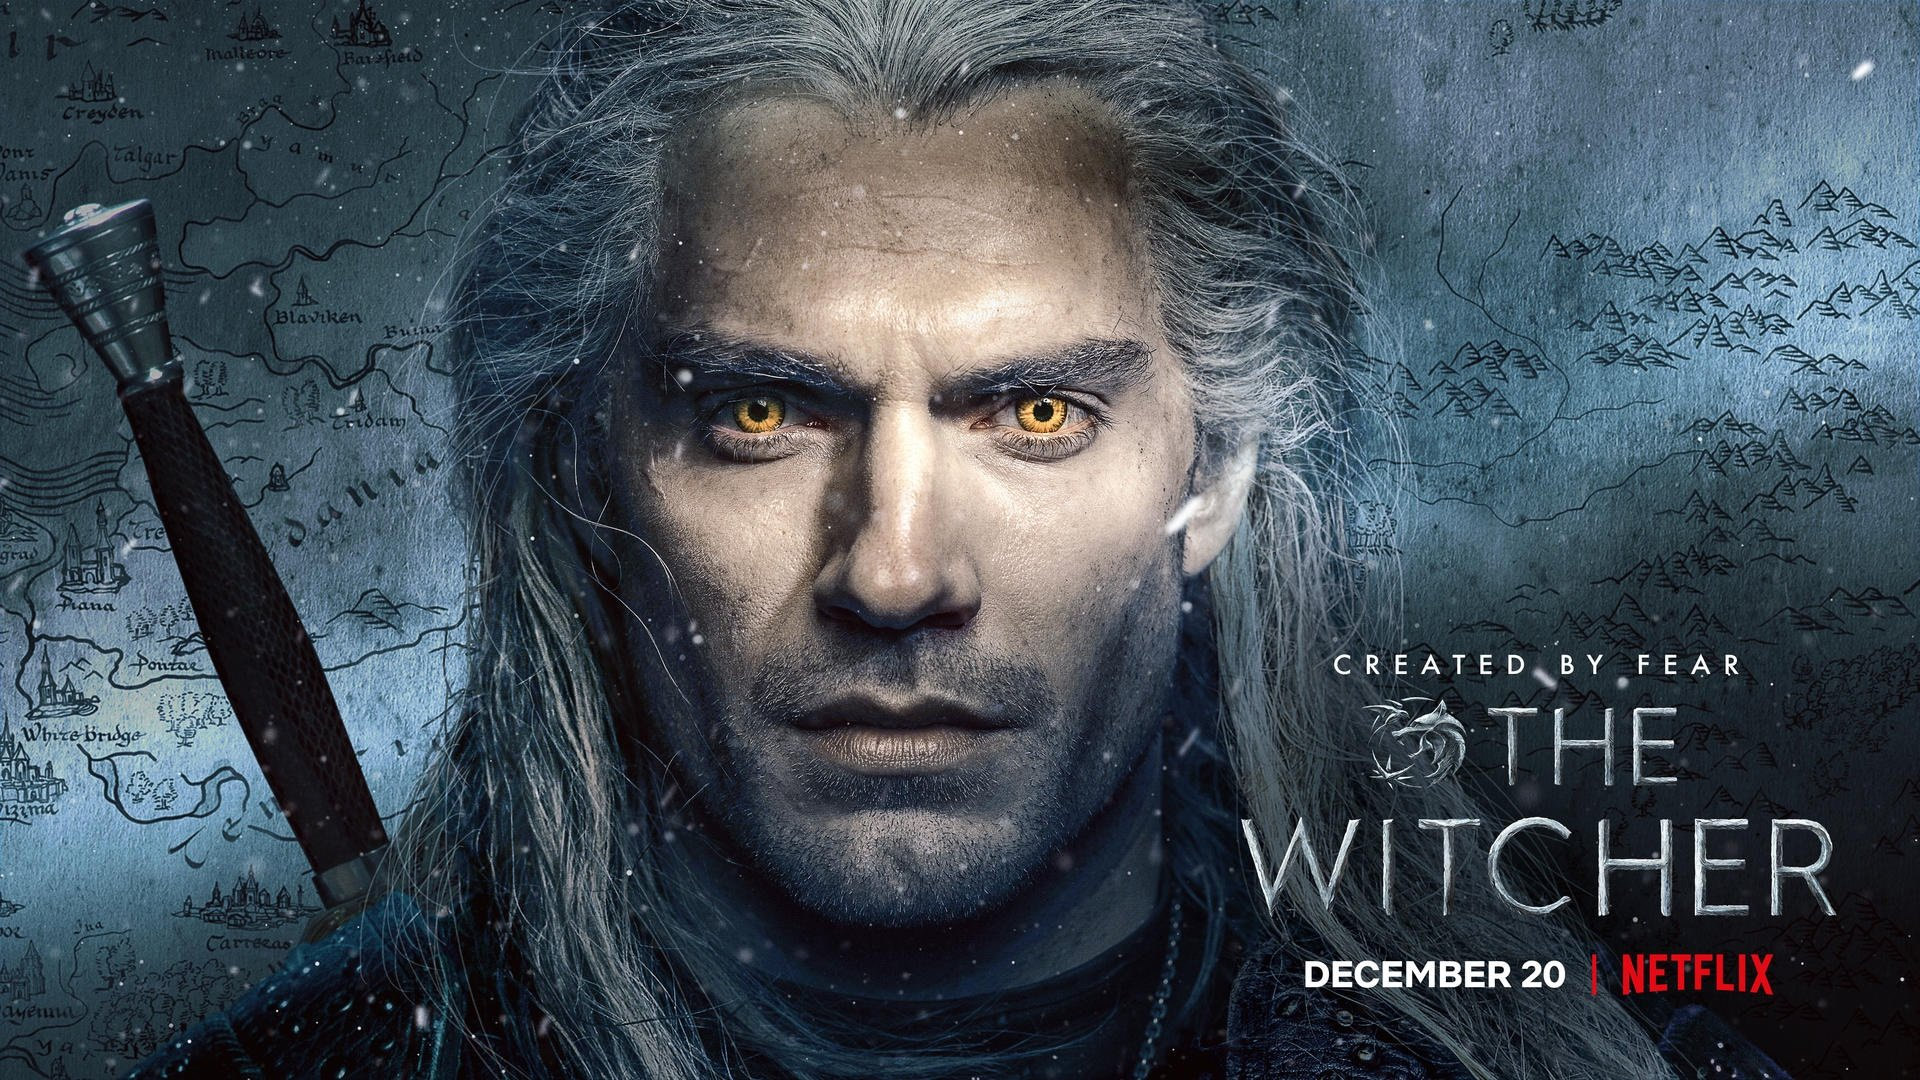 The Witcher Show vs Witcher Books What difference did Netflix Version had in the Fantasy Series